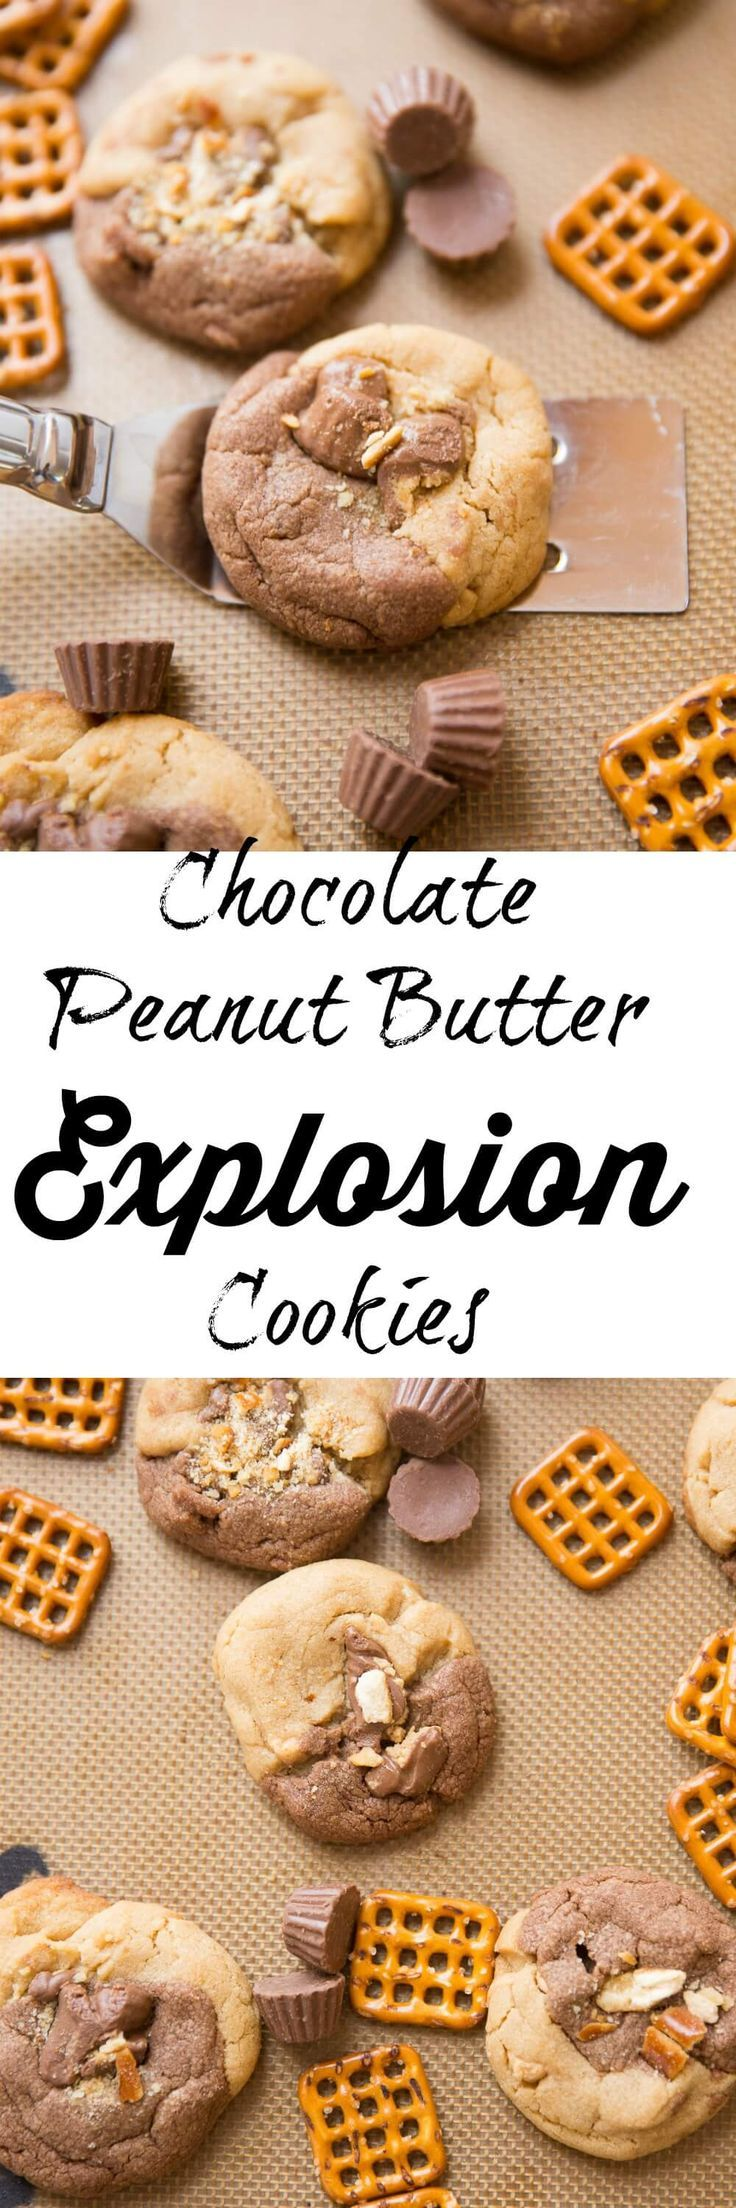 Chocolate and peanut butter are swirled together in these Chocolate Peanut Butter Explosion Cookies!Peanut butter cups, peanut butter chips all make an appearance as do pretzels which add a little saltiness to the sweet mix!